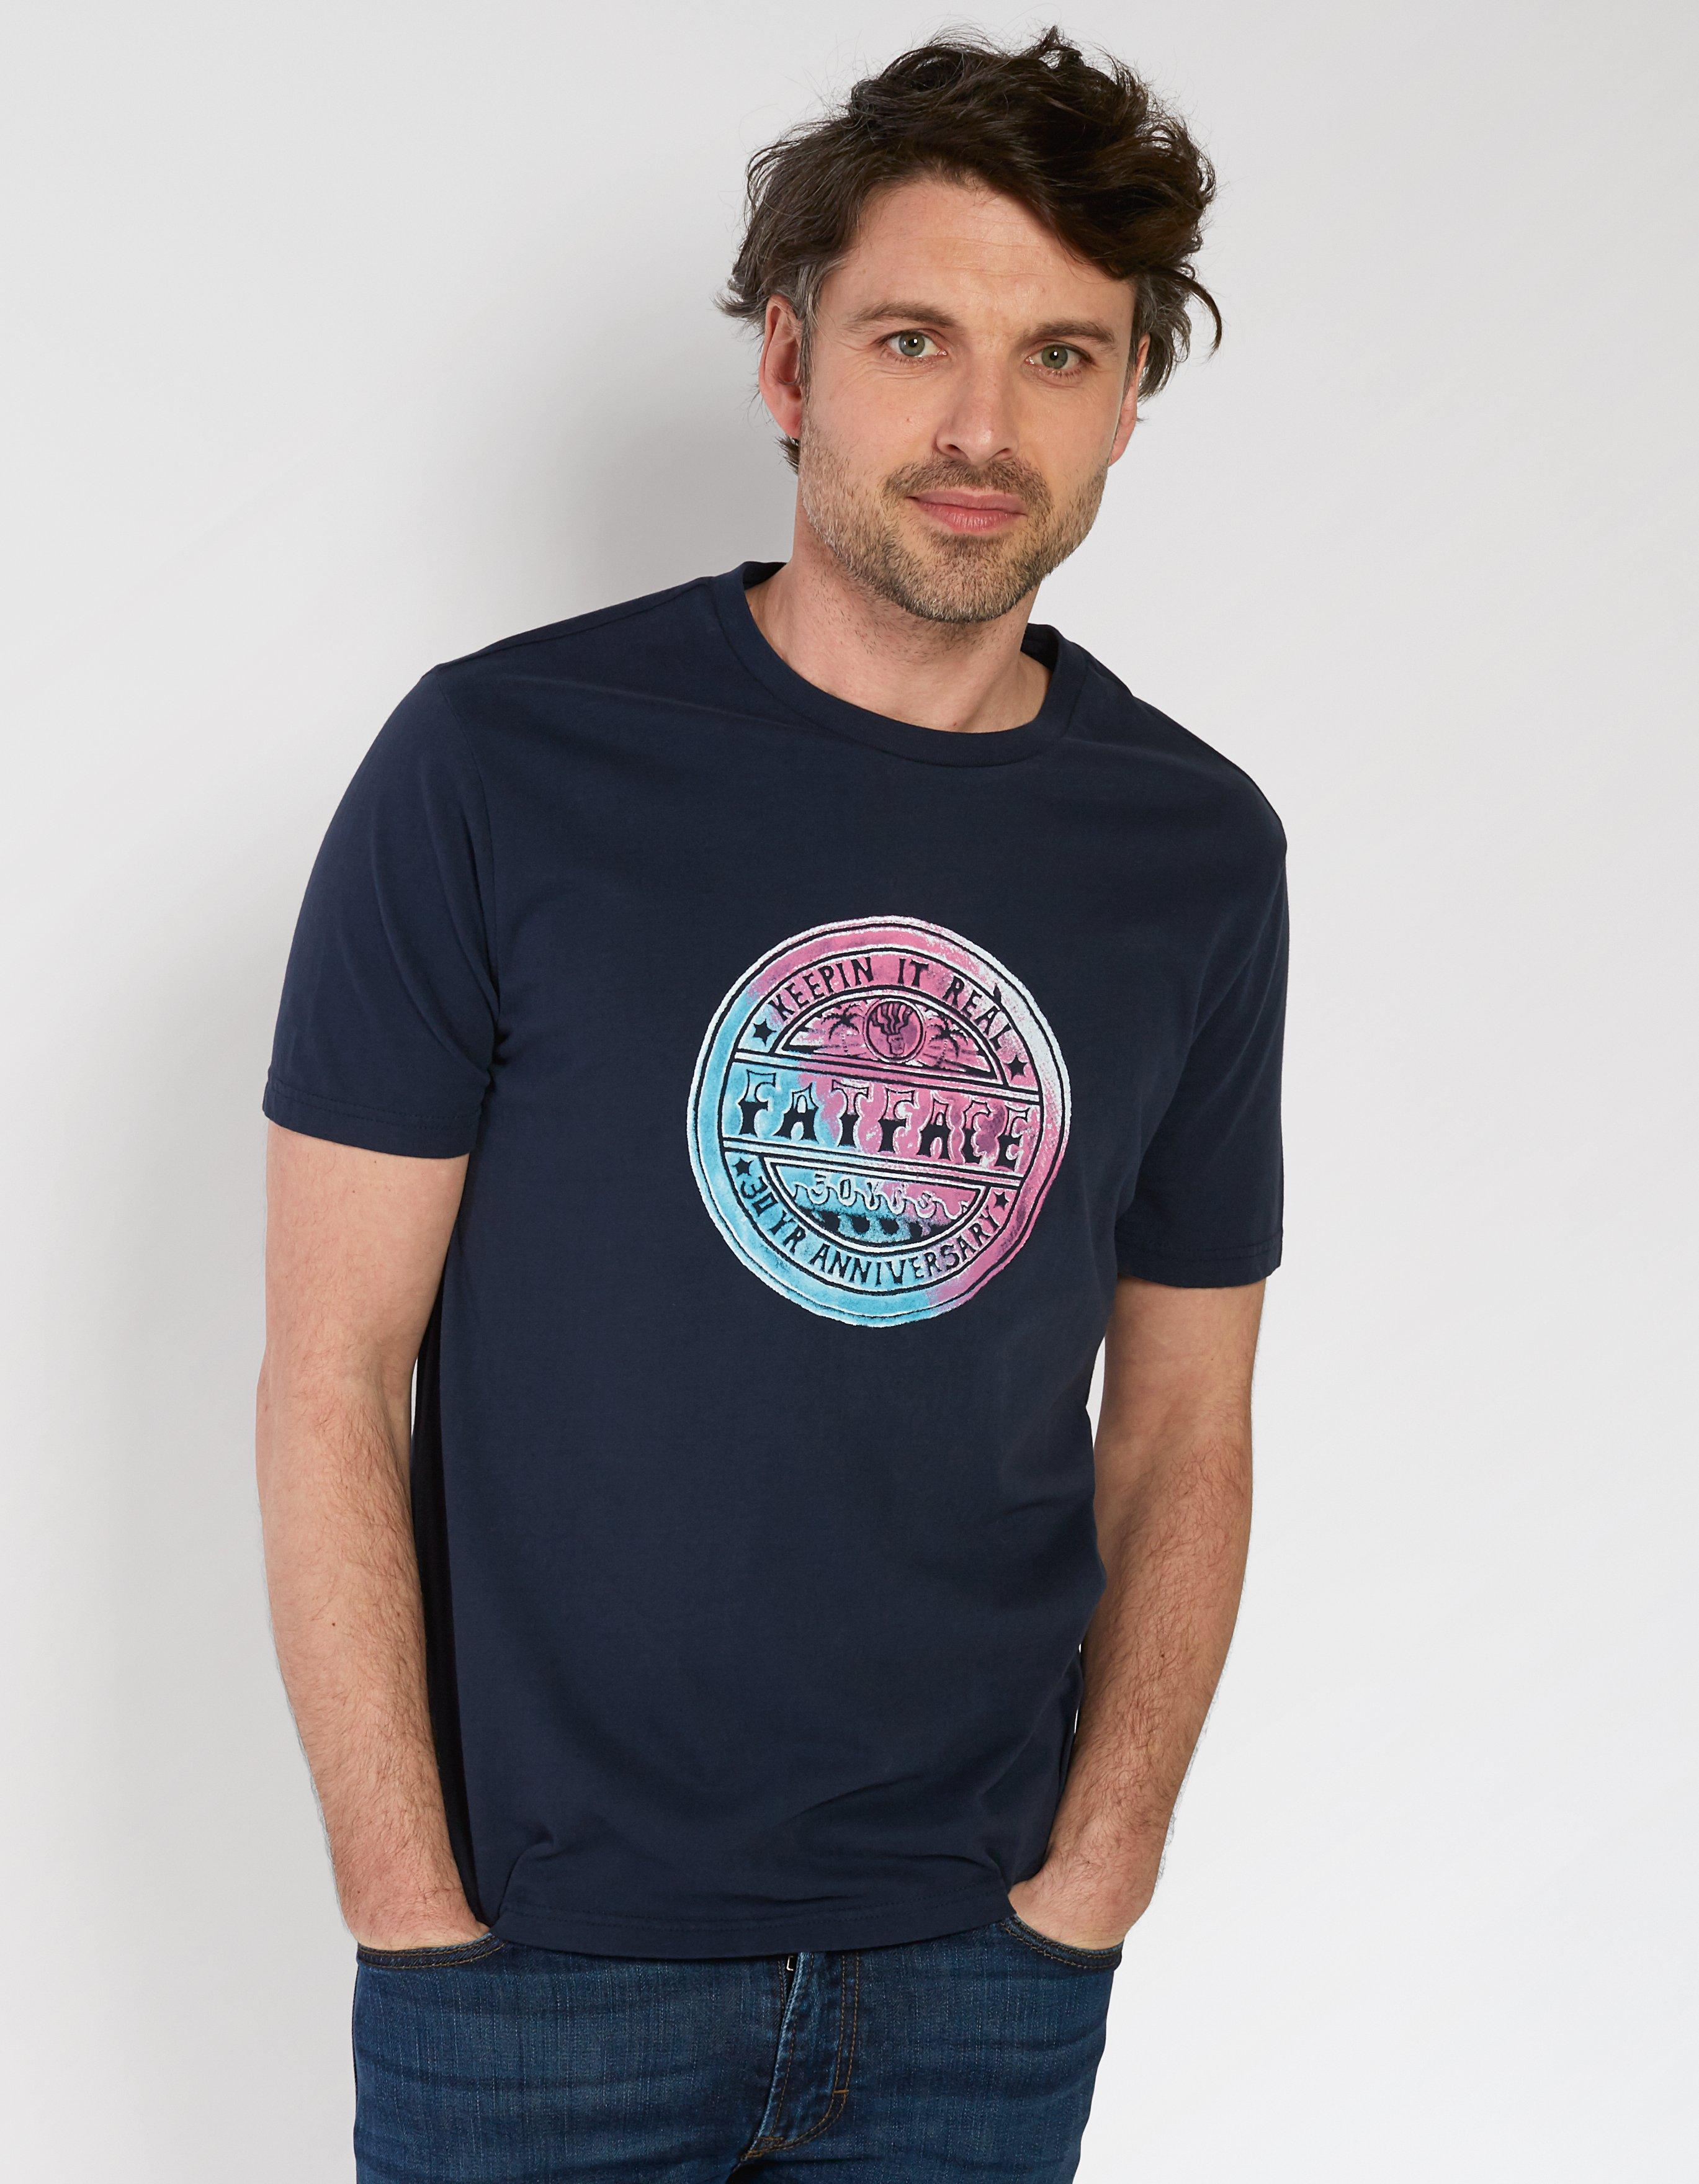 30 Years Keep Real Organic Cotton Graphic T Shirt